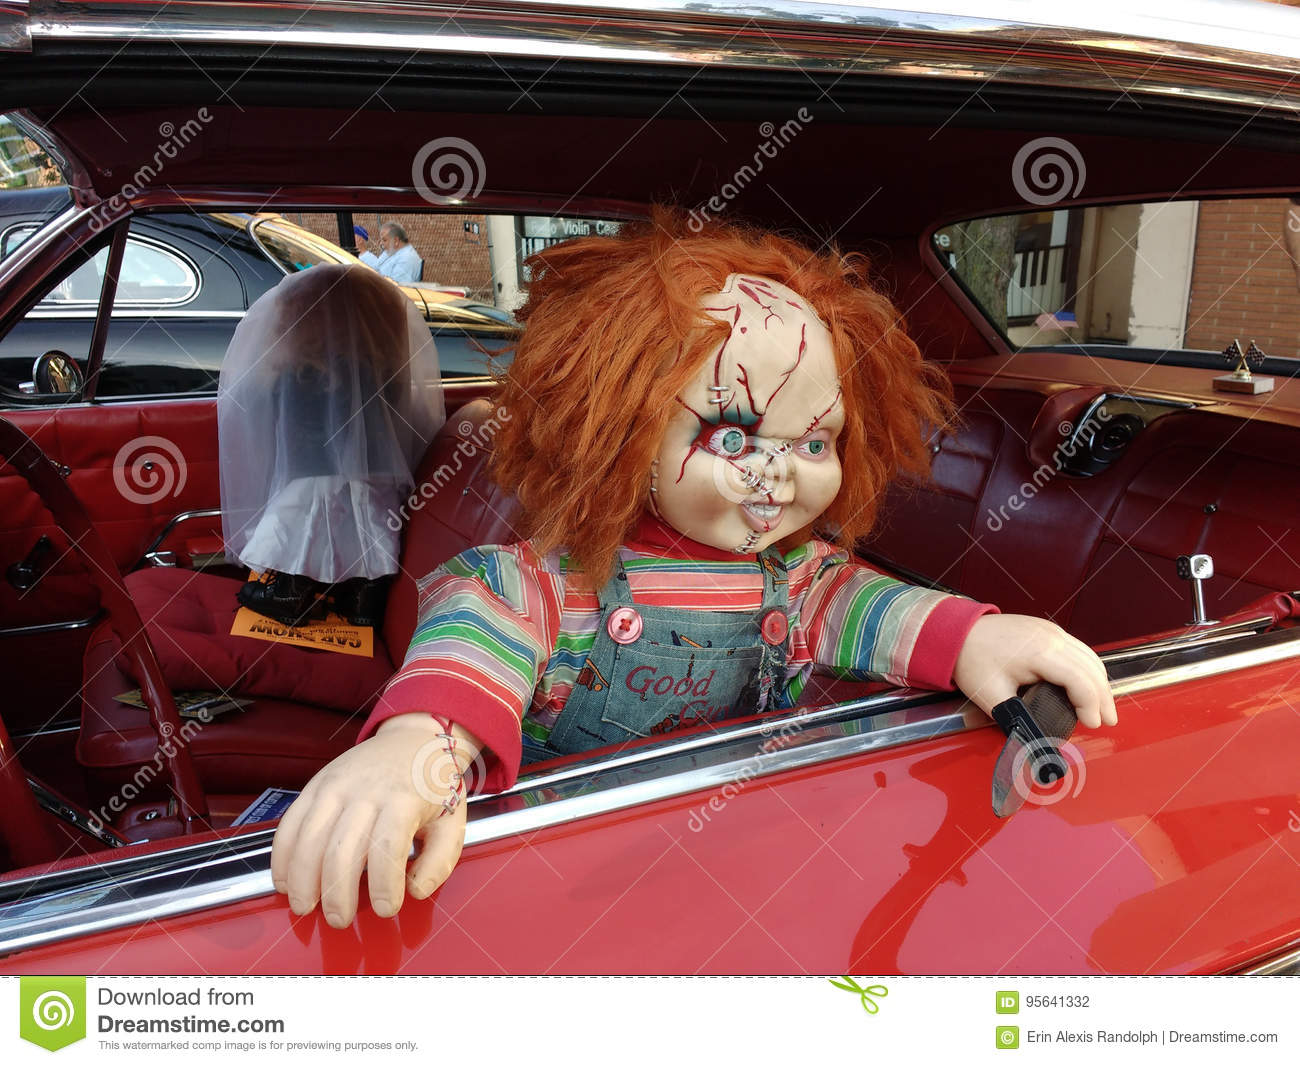 Chucky Doll in a Vintage Car, Horror Film Character